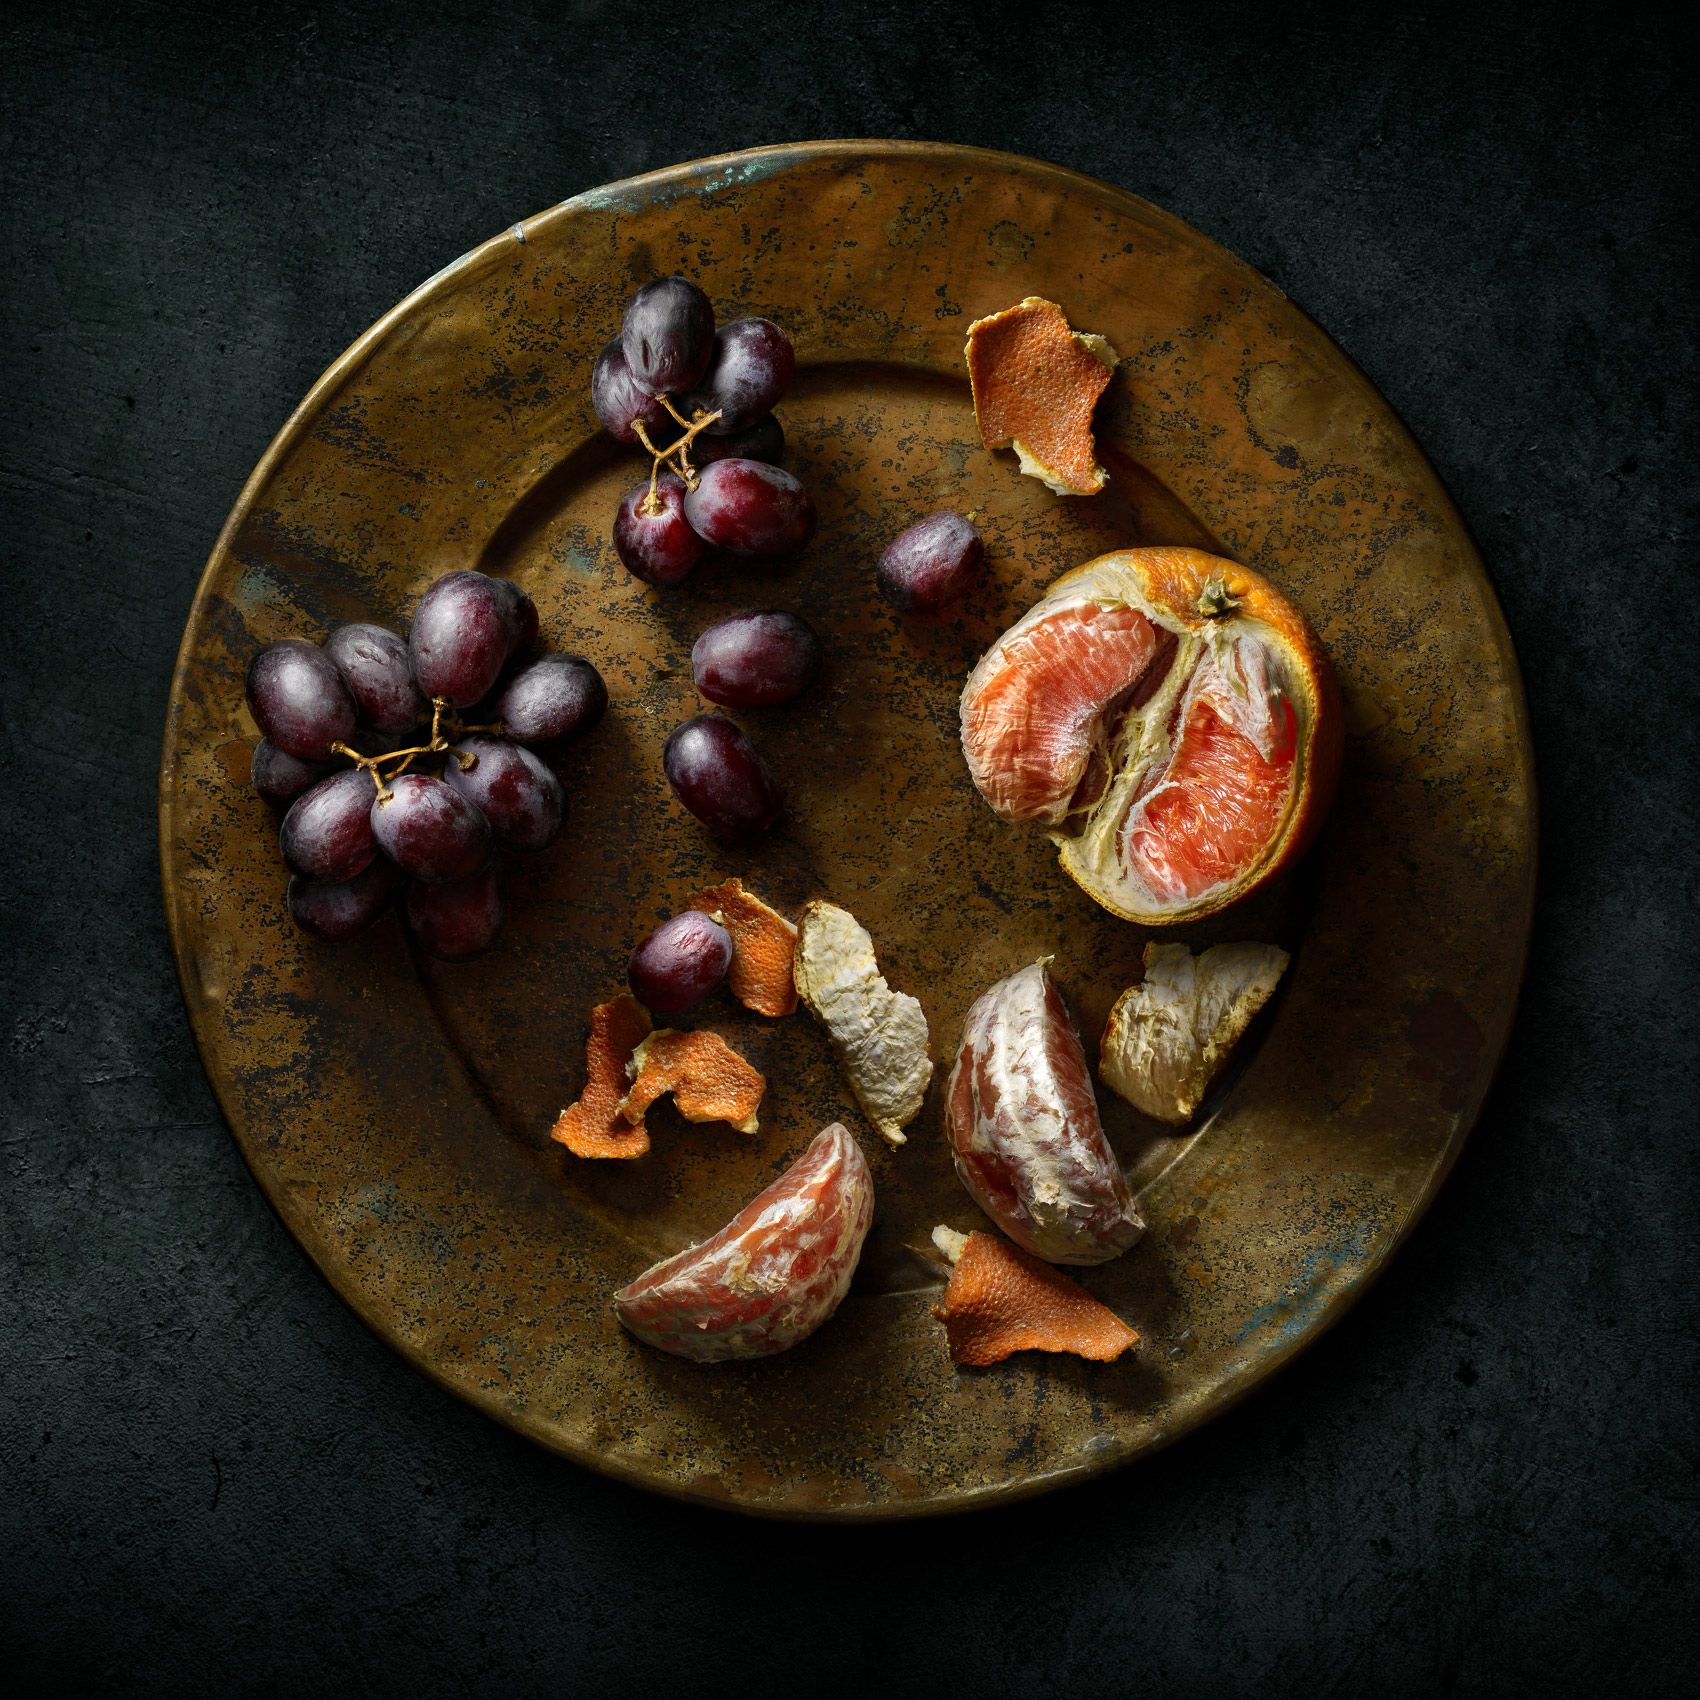 Blood Oranges and Grapes